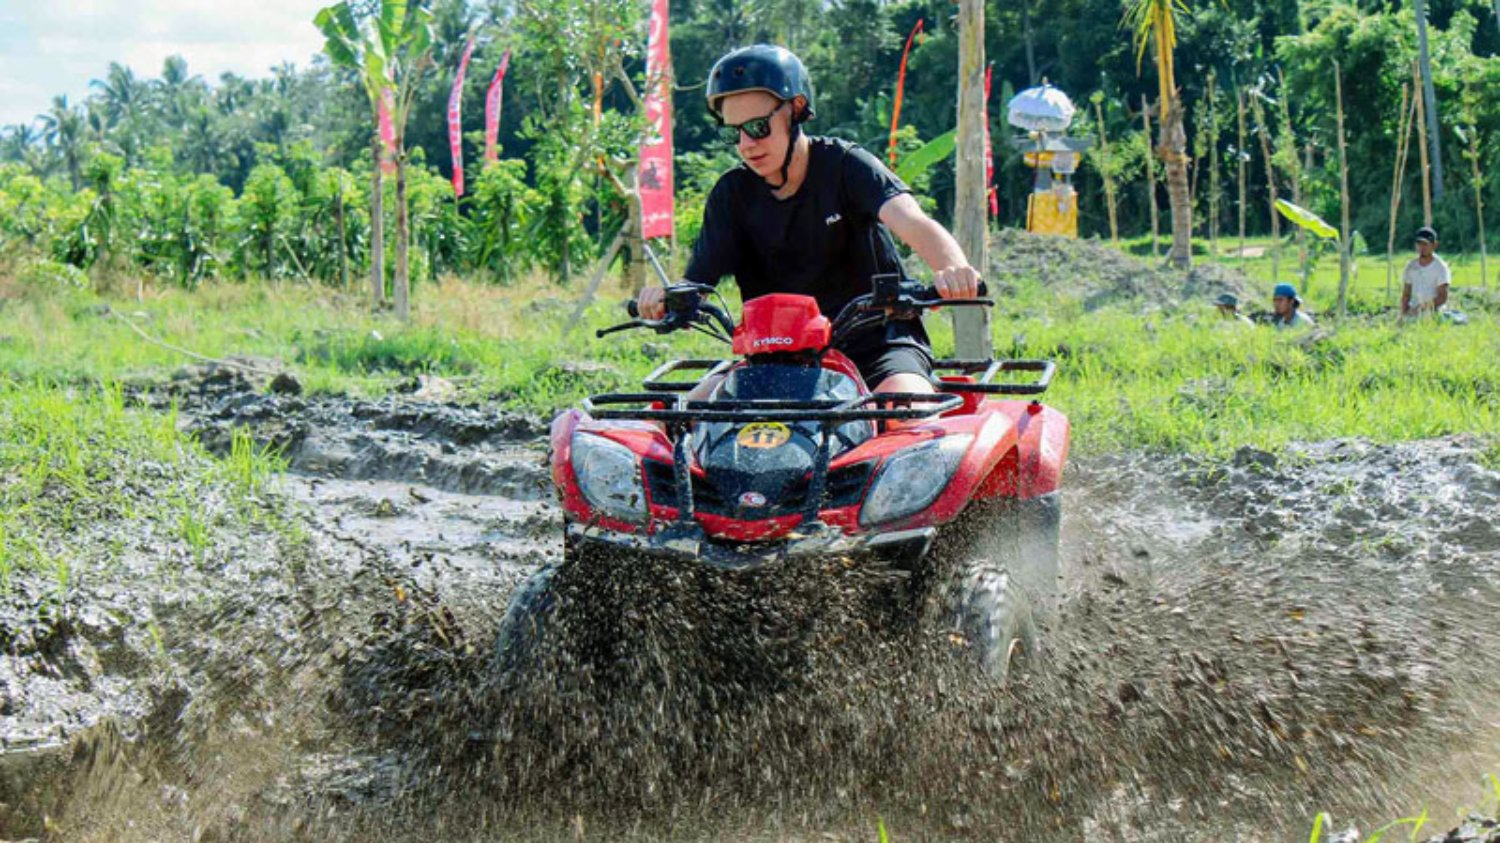 Quad Bike Adventure in Ubud